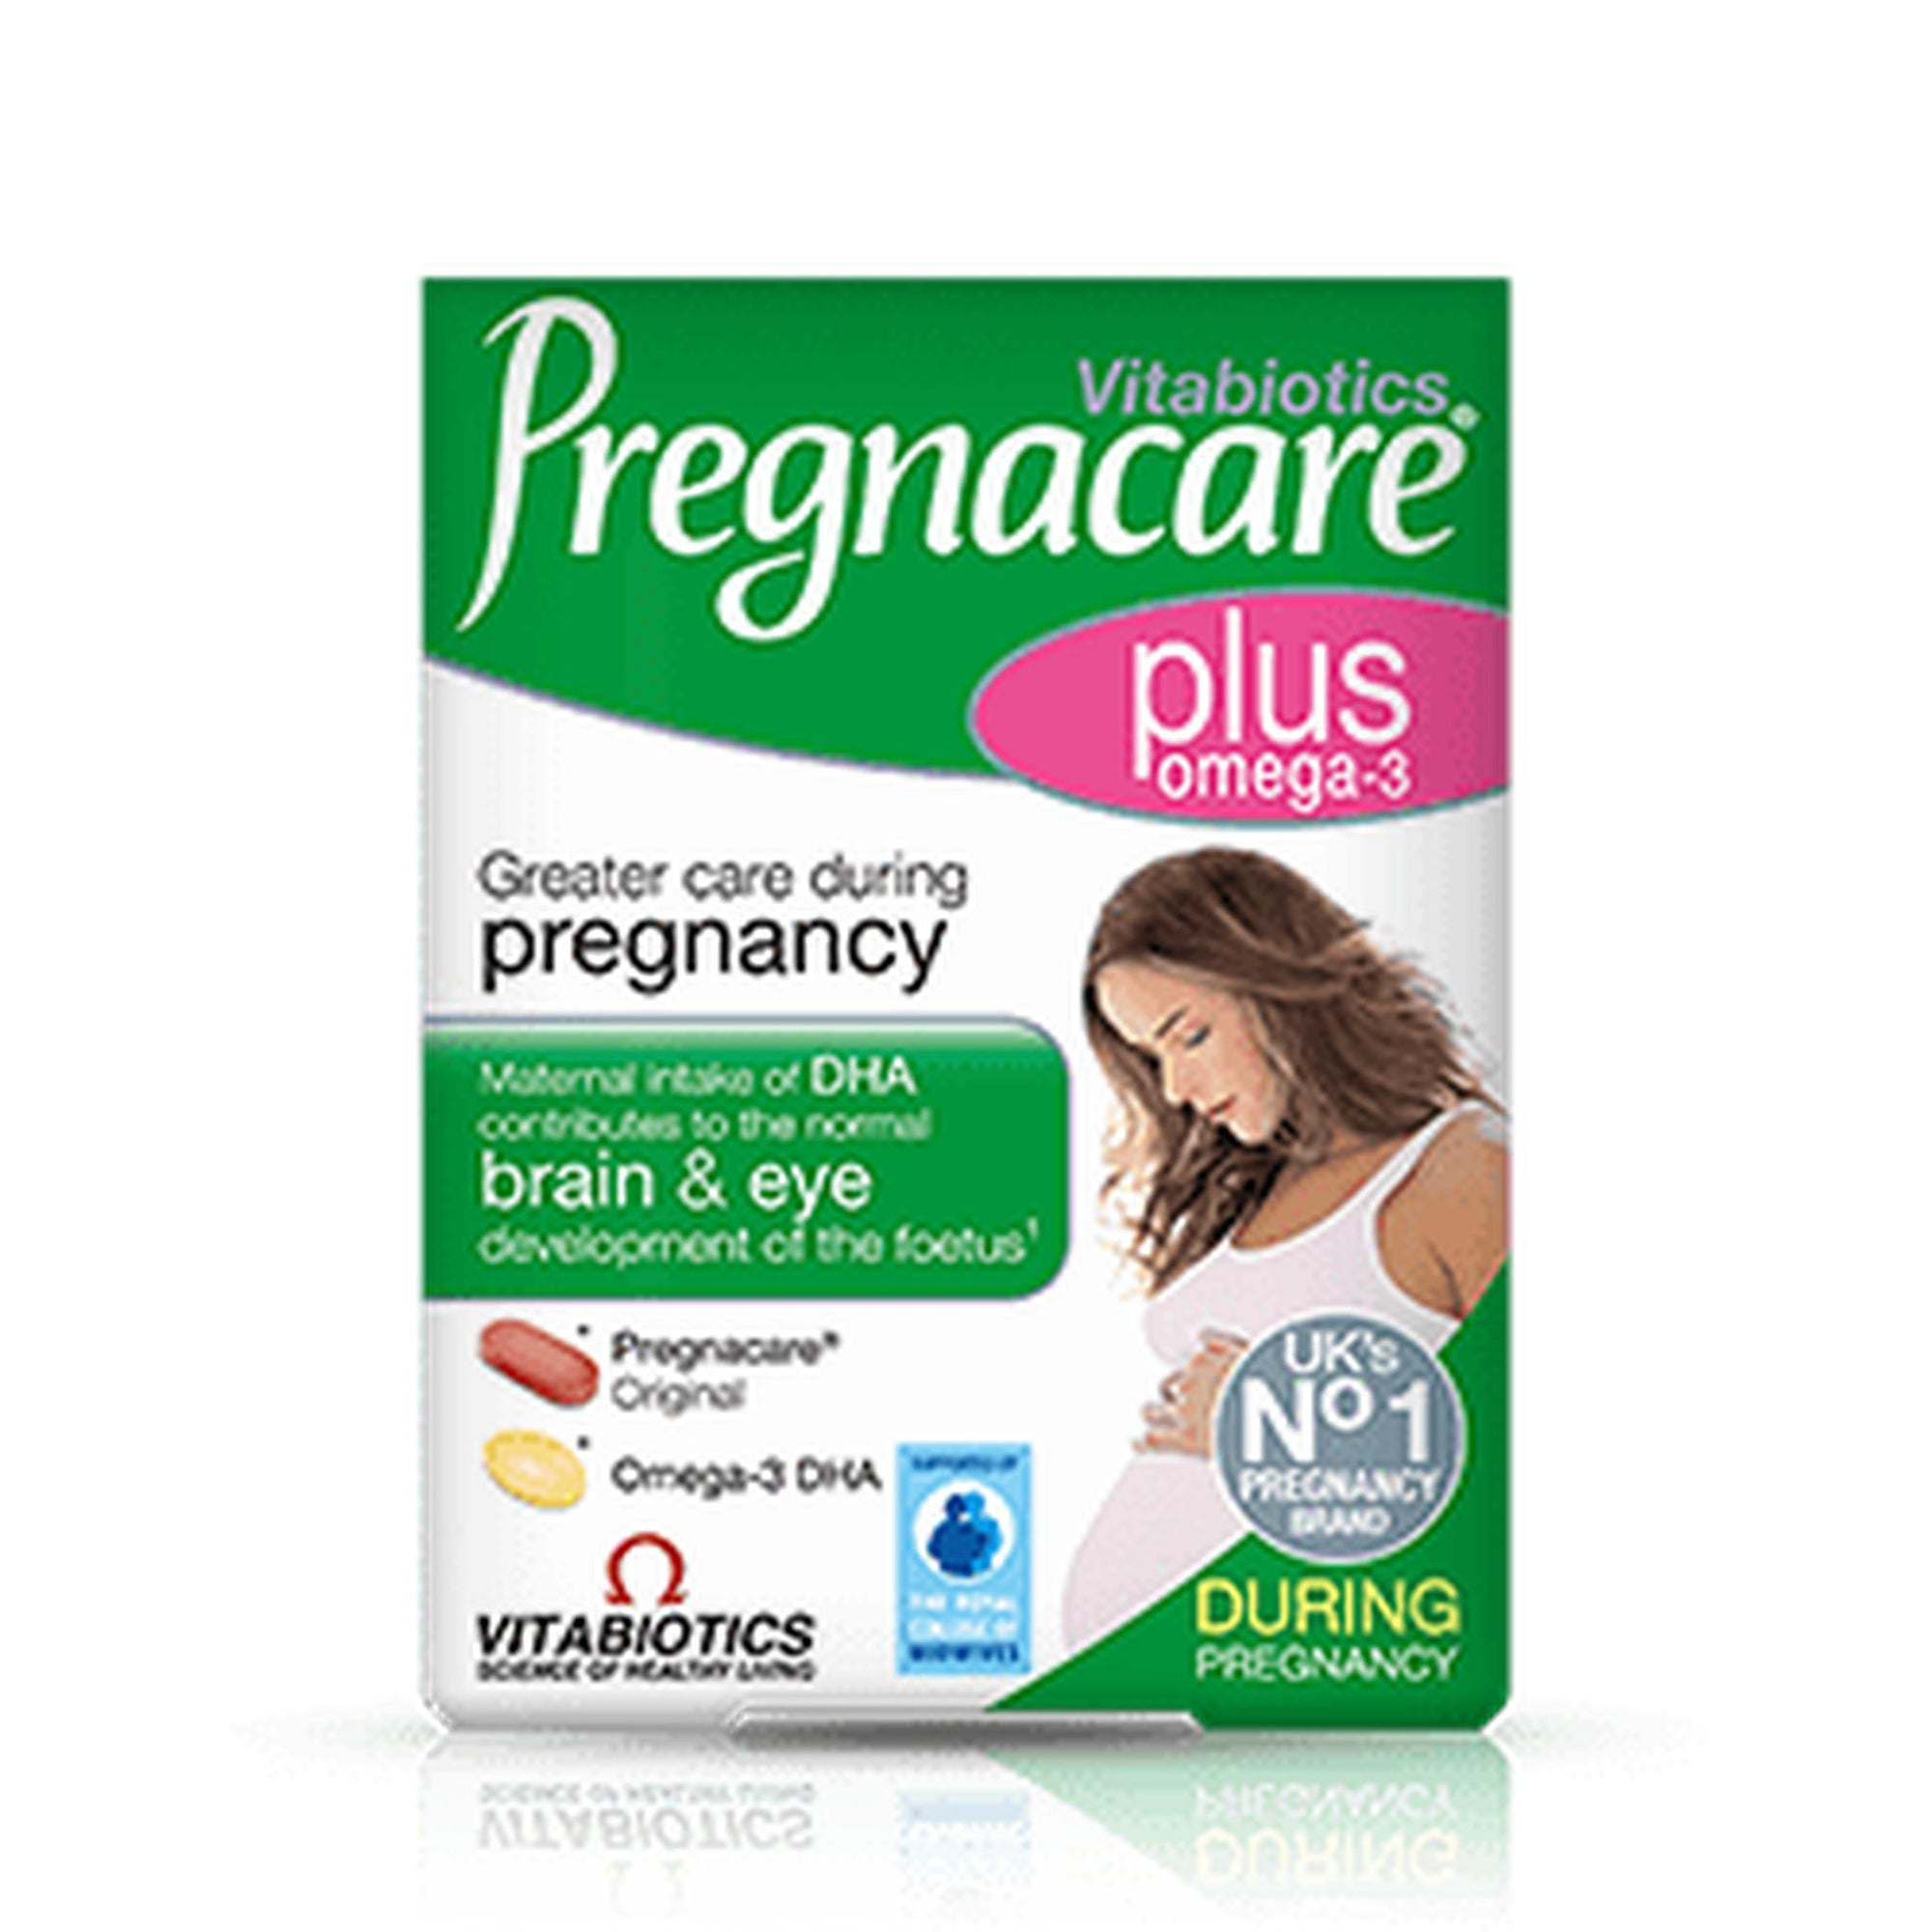 Pregnacare Plus-Supplements-Mother and Baby Shop Kenya's #1 Online Baby Shop